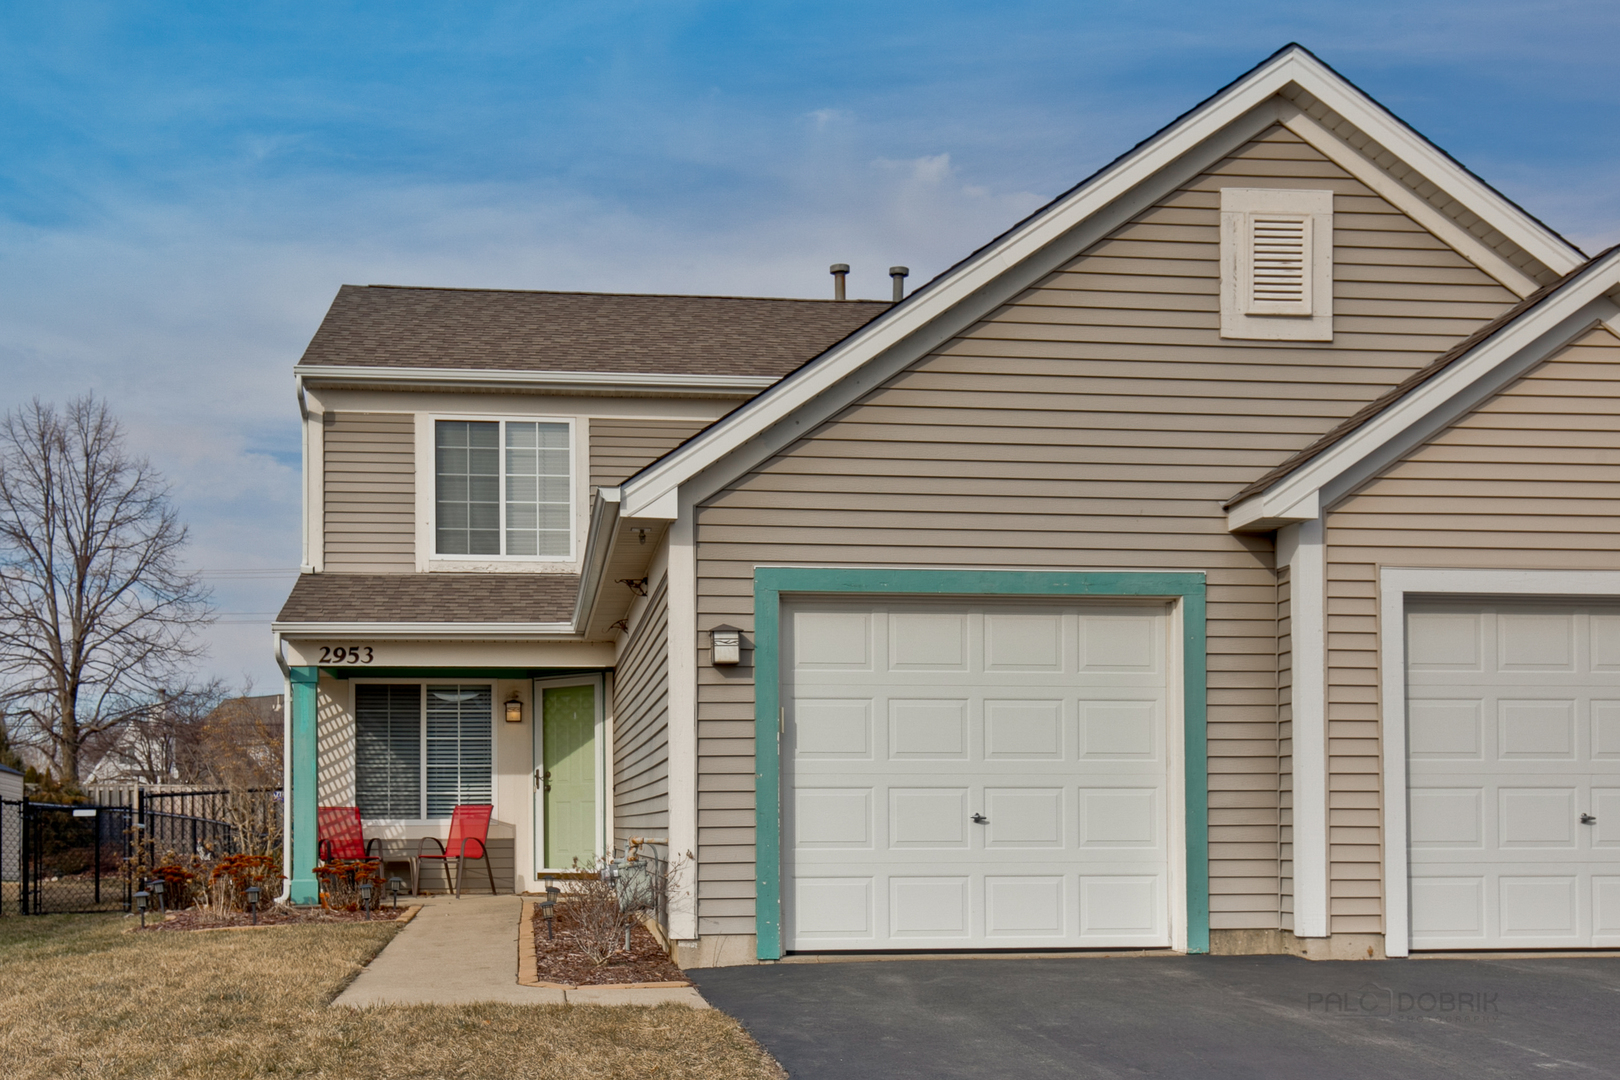 Photo for 2953 Impressions Drive, Lake In The Hills, IL 60156 (MLS # 10666115)